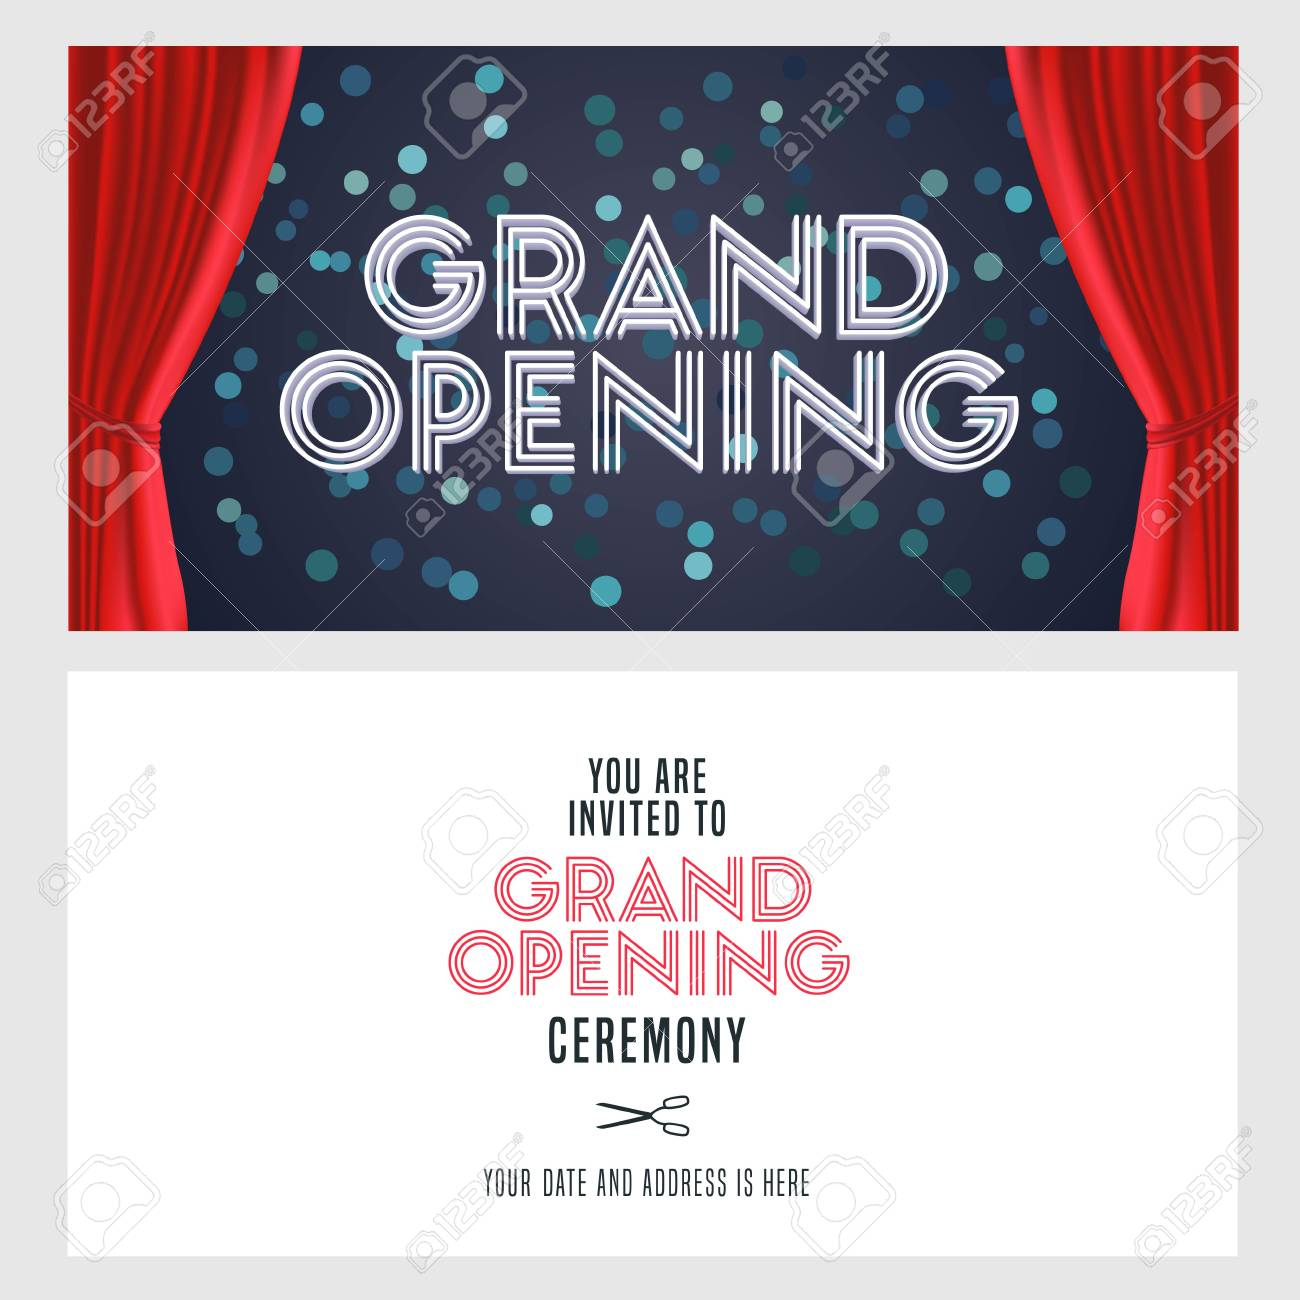 grand opening vector banner illustration invitation card template festive invite design with red